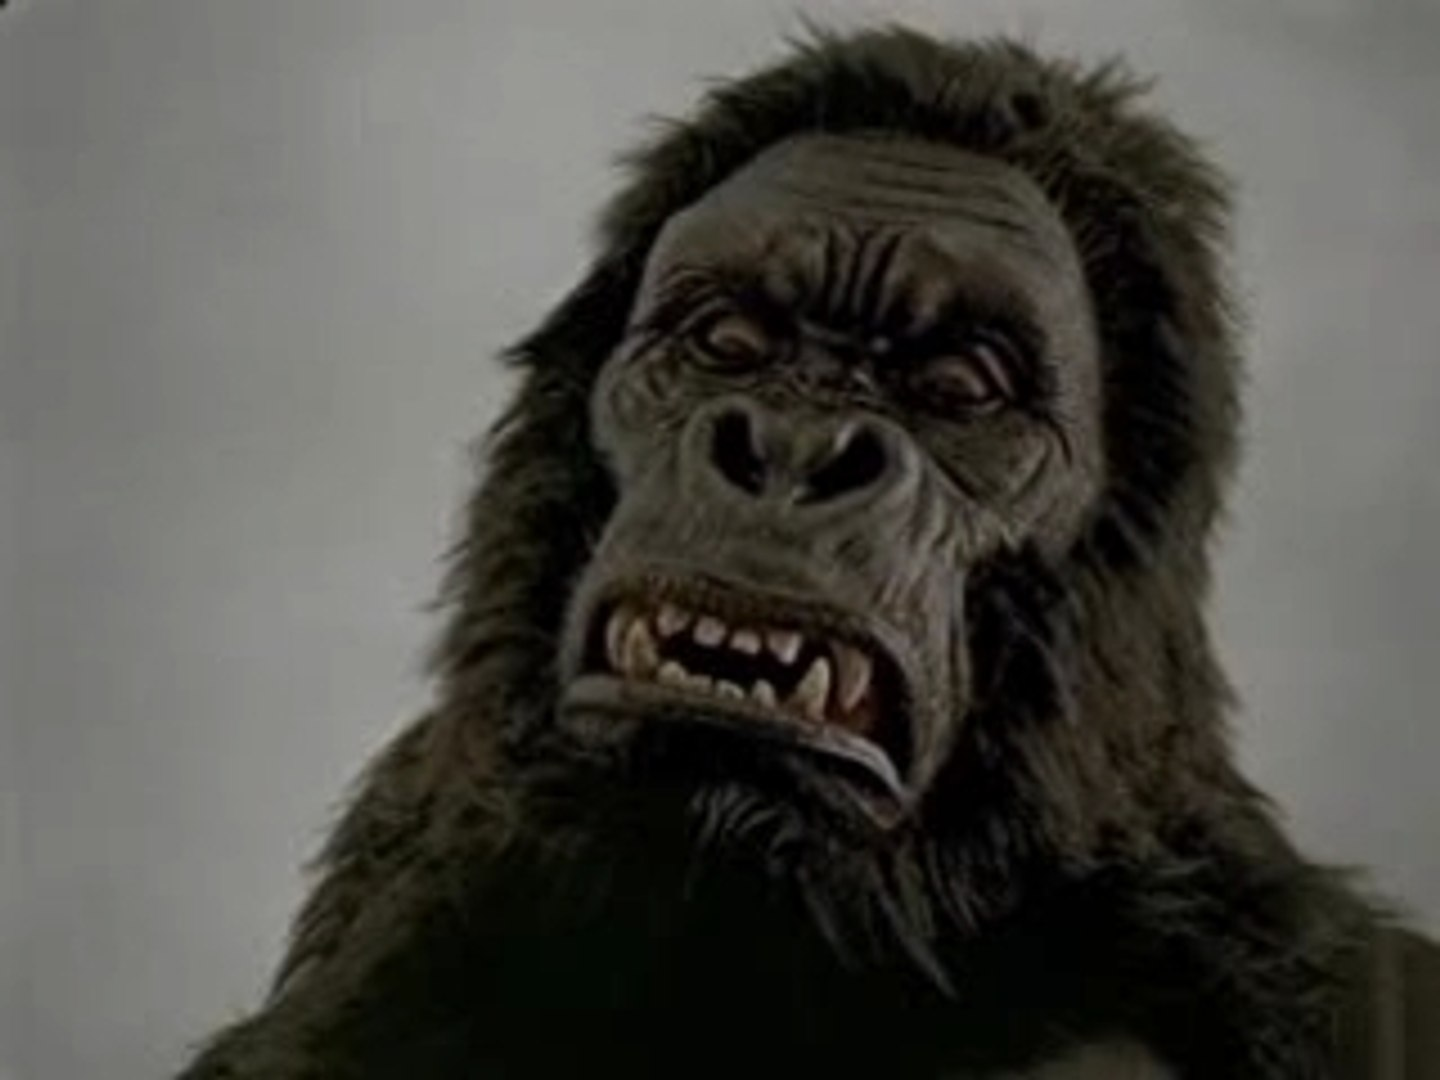 King Kong by JWT Co - Cannes Lions